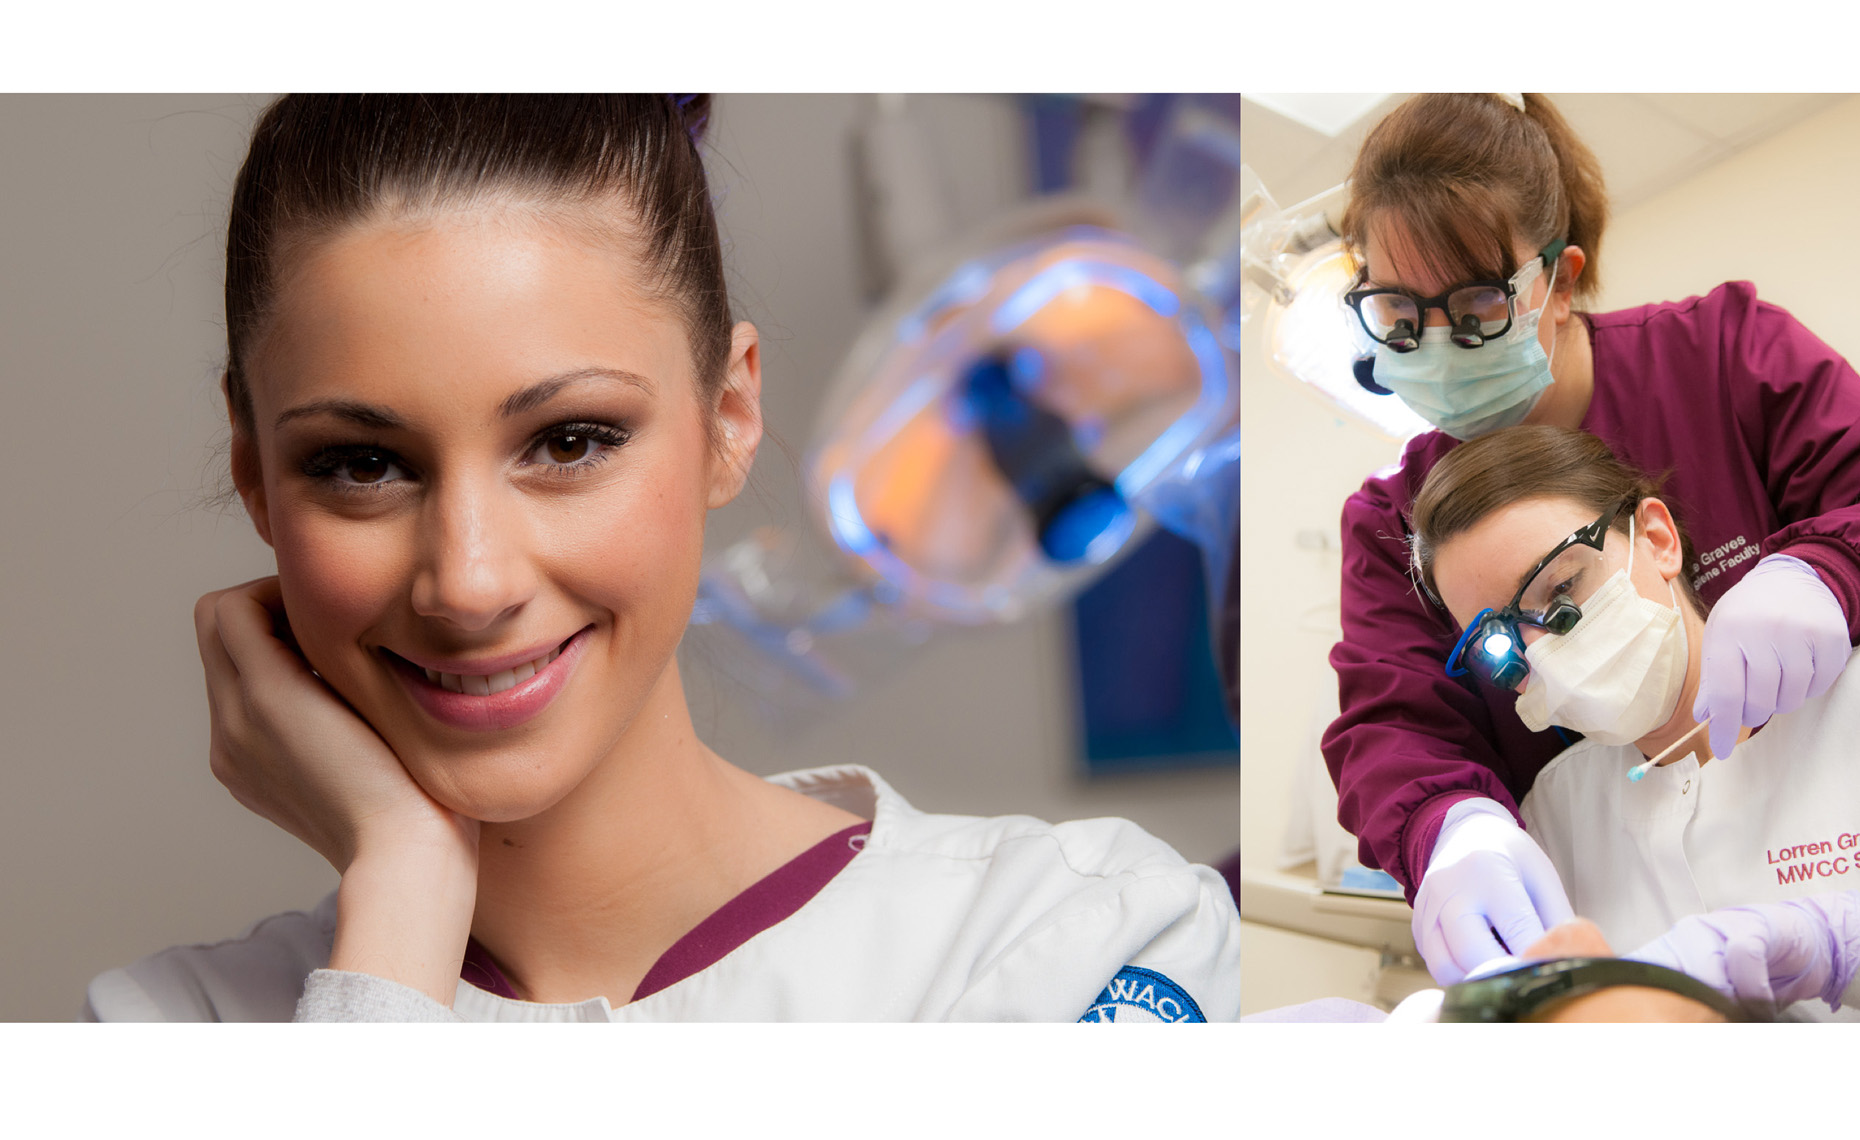 higher_ed_photography_dental_technician_01.jpg